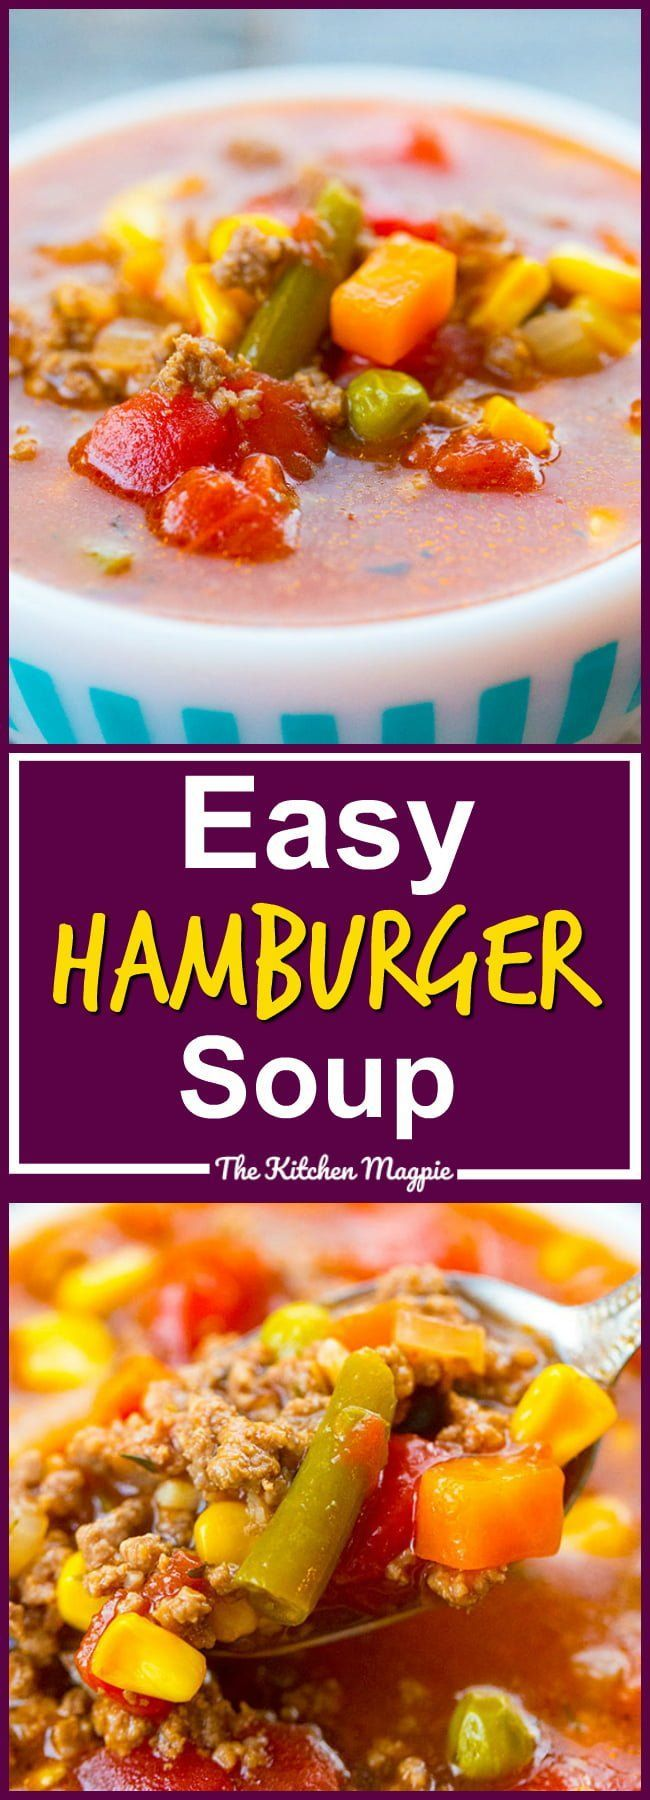 This easy to make and classic hamburger soup has been a dinnertime staple for de...  - Soup -